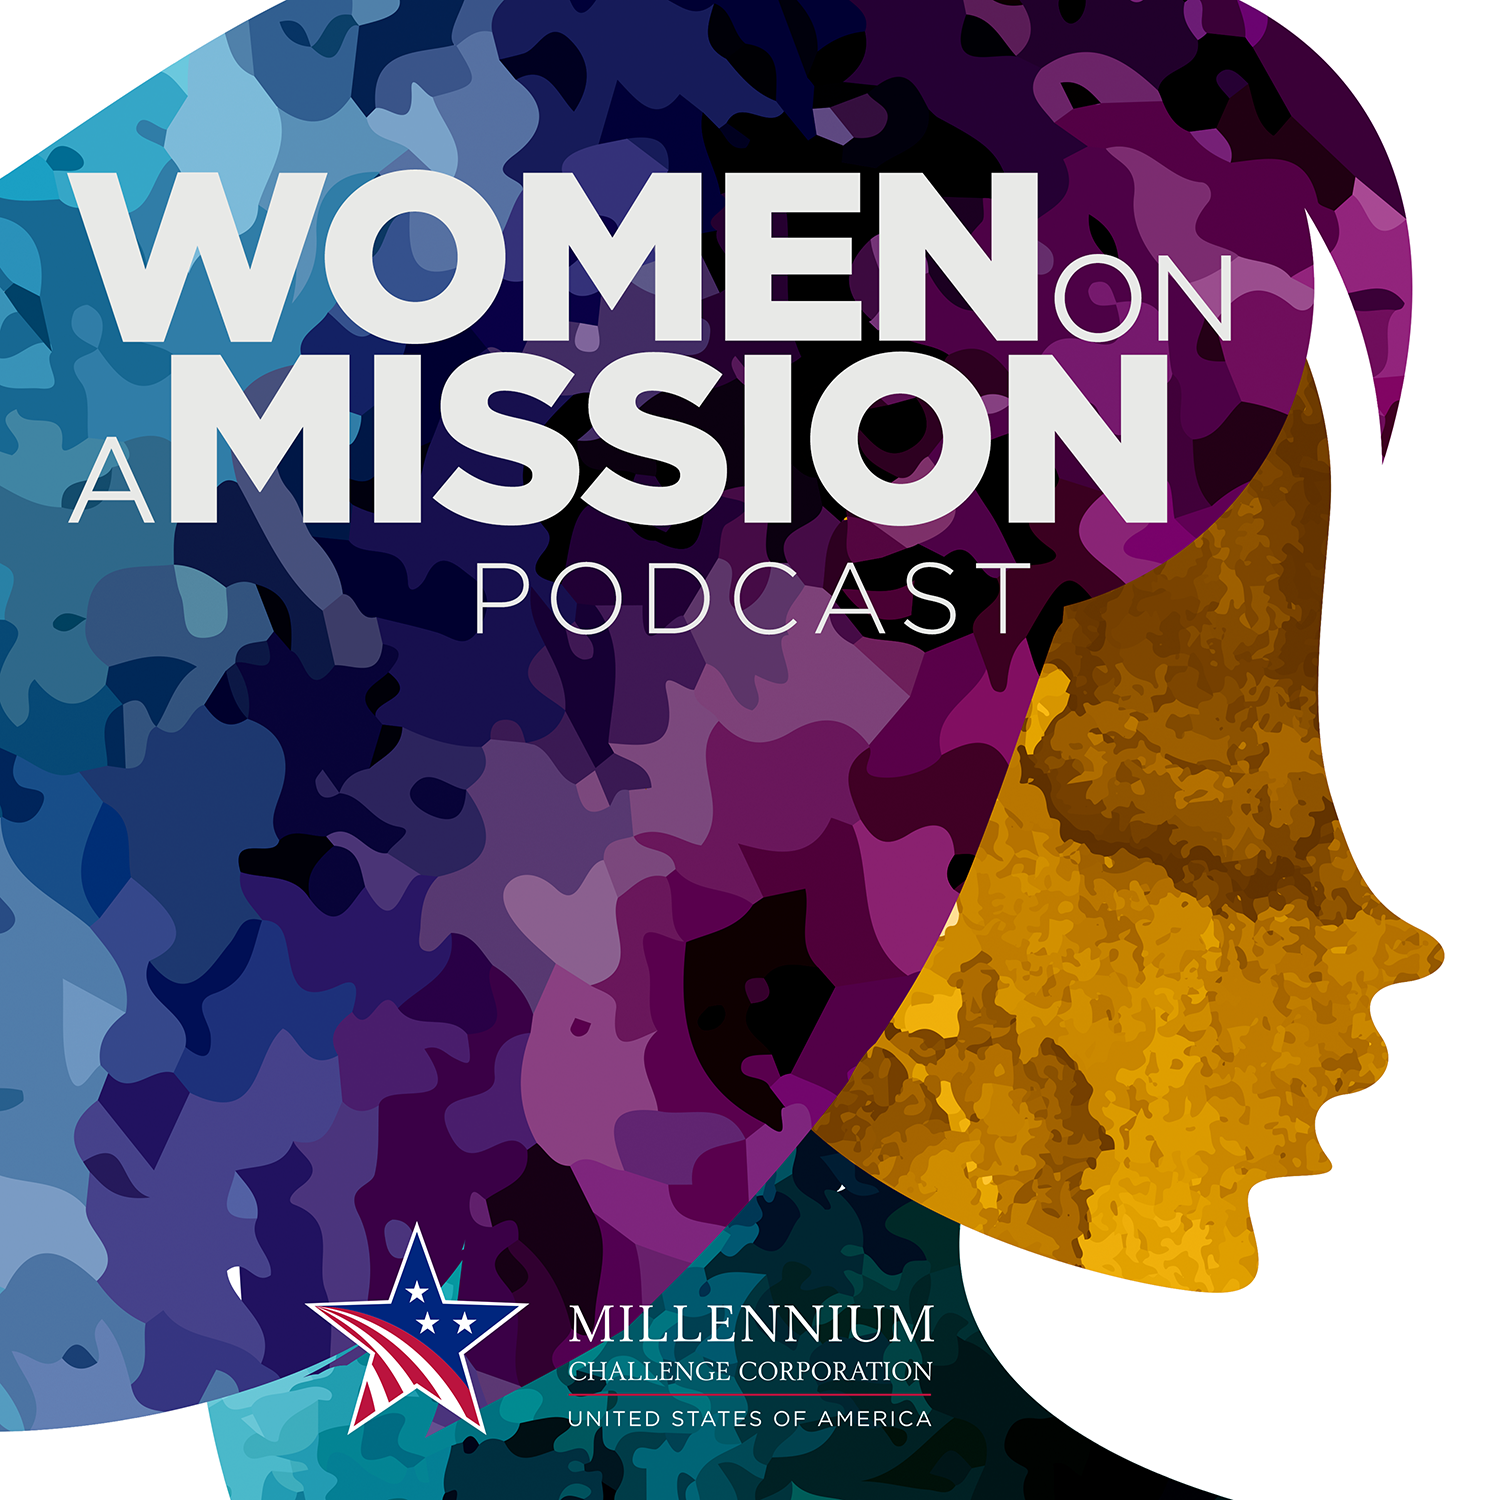 Graphic: Women on a Mission Podcast Series artwork